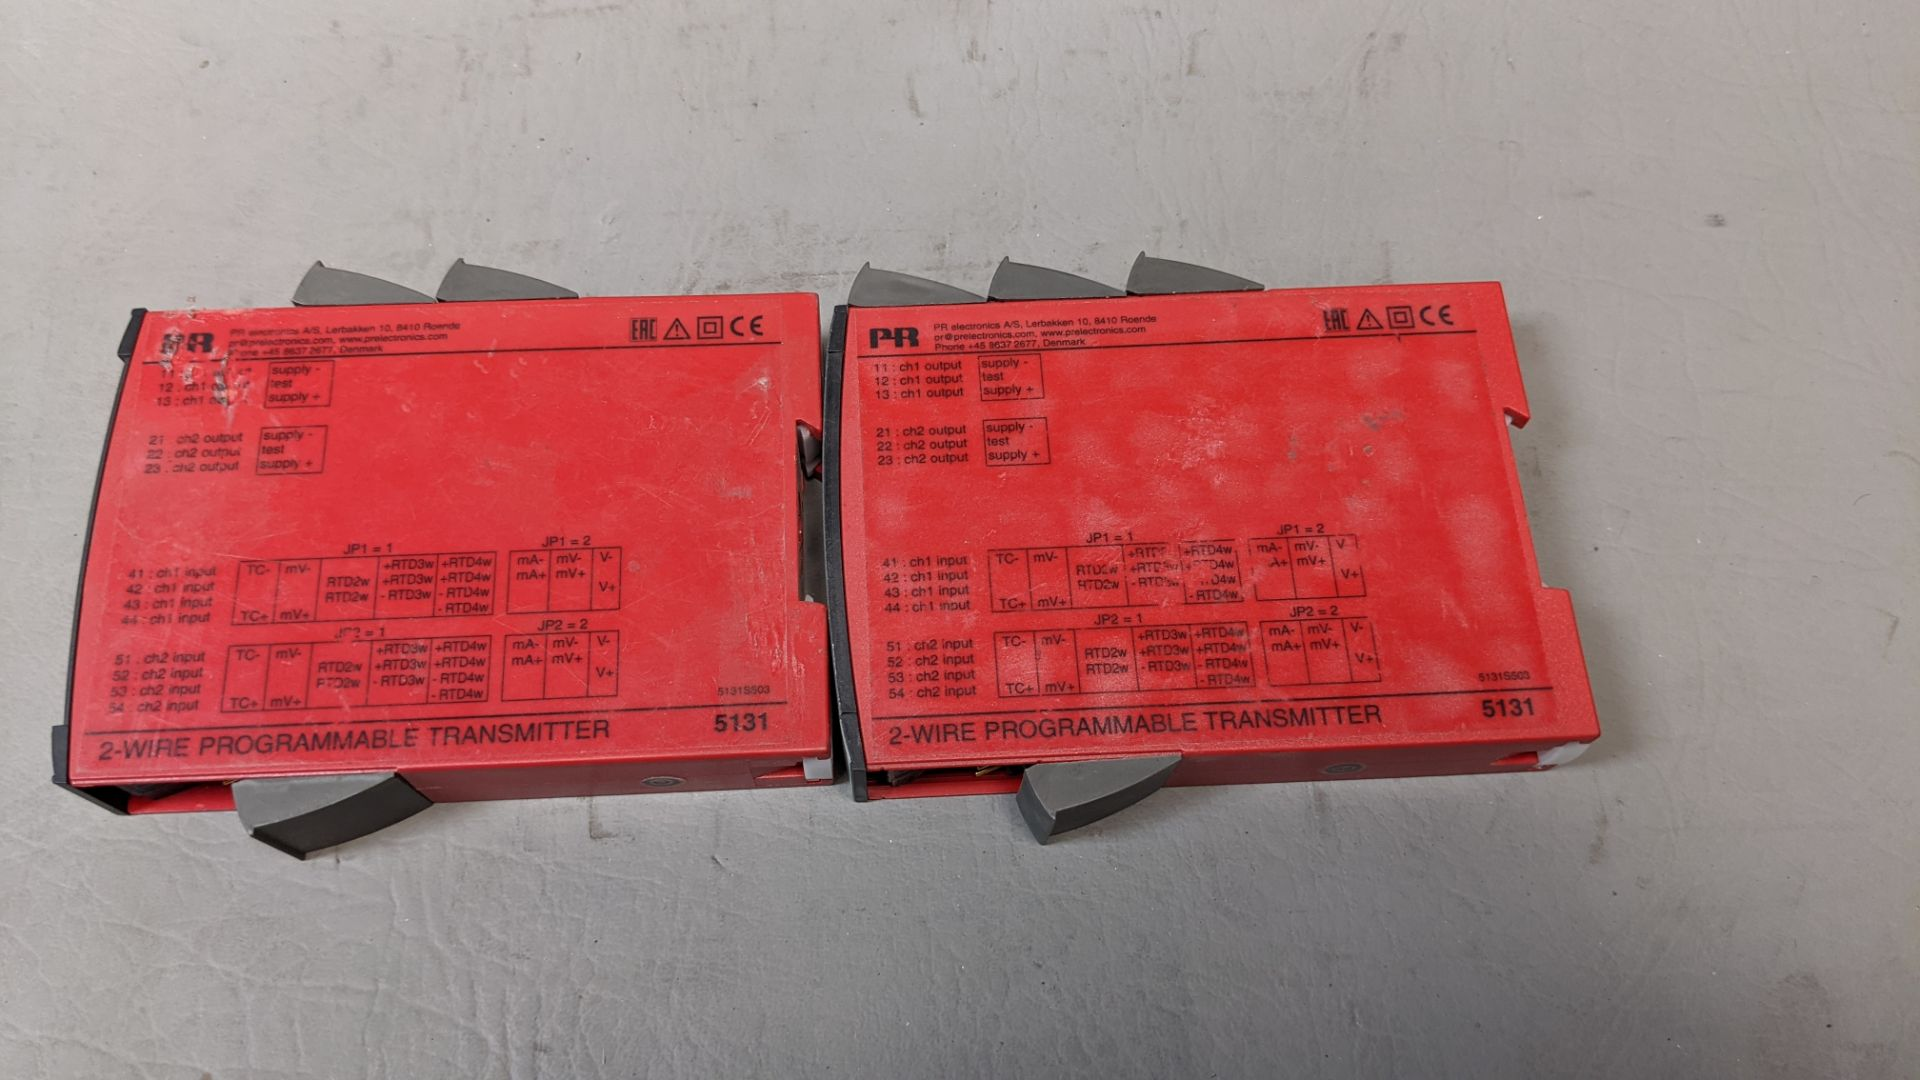 LOT OF PR 2 WIRE PROGRAMMABLE TRANSMITTERS - Image 2 of 2